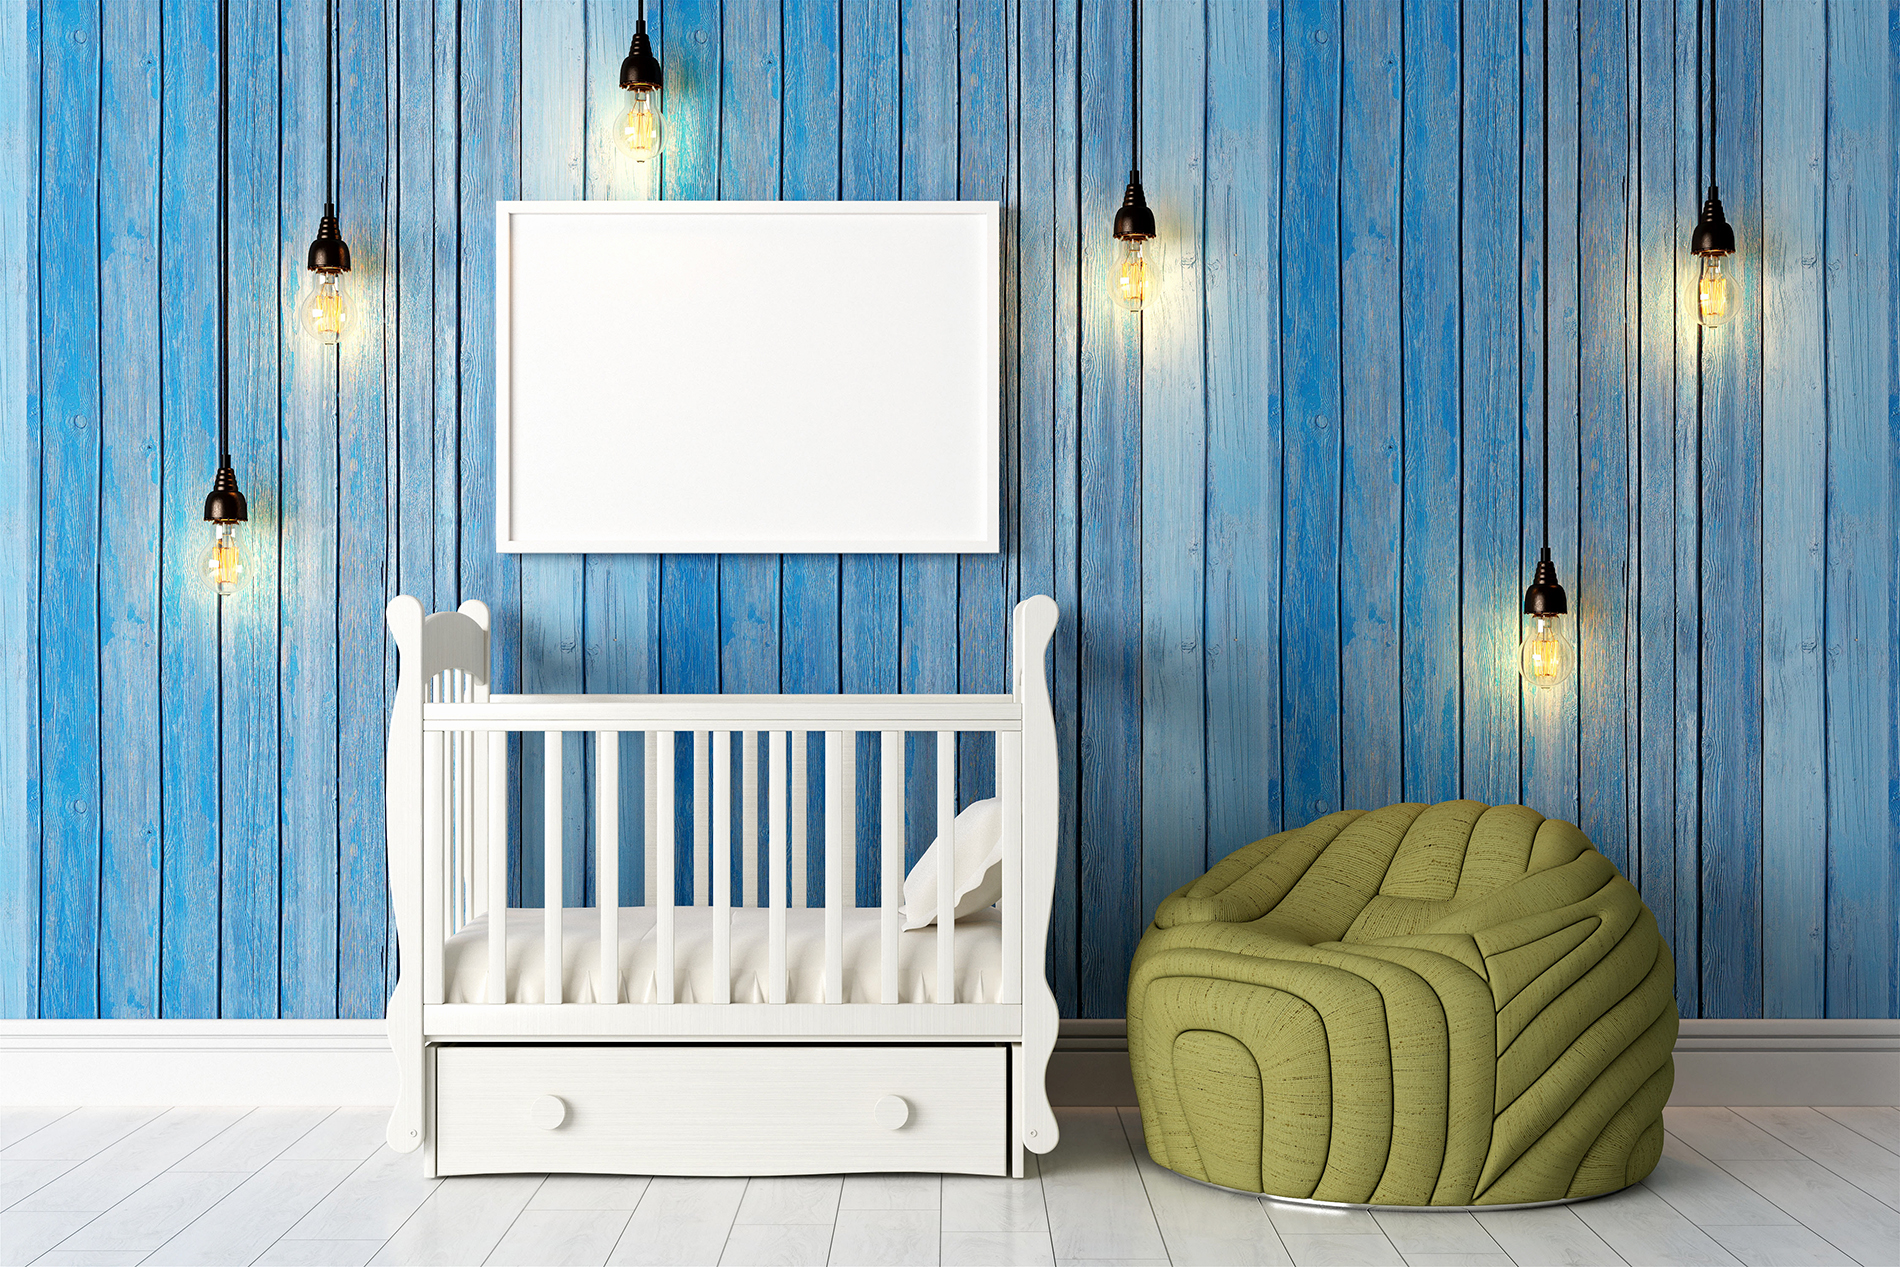 Crib and blue paneled walls 53421